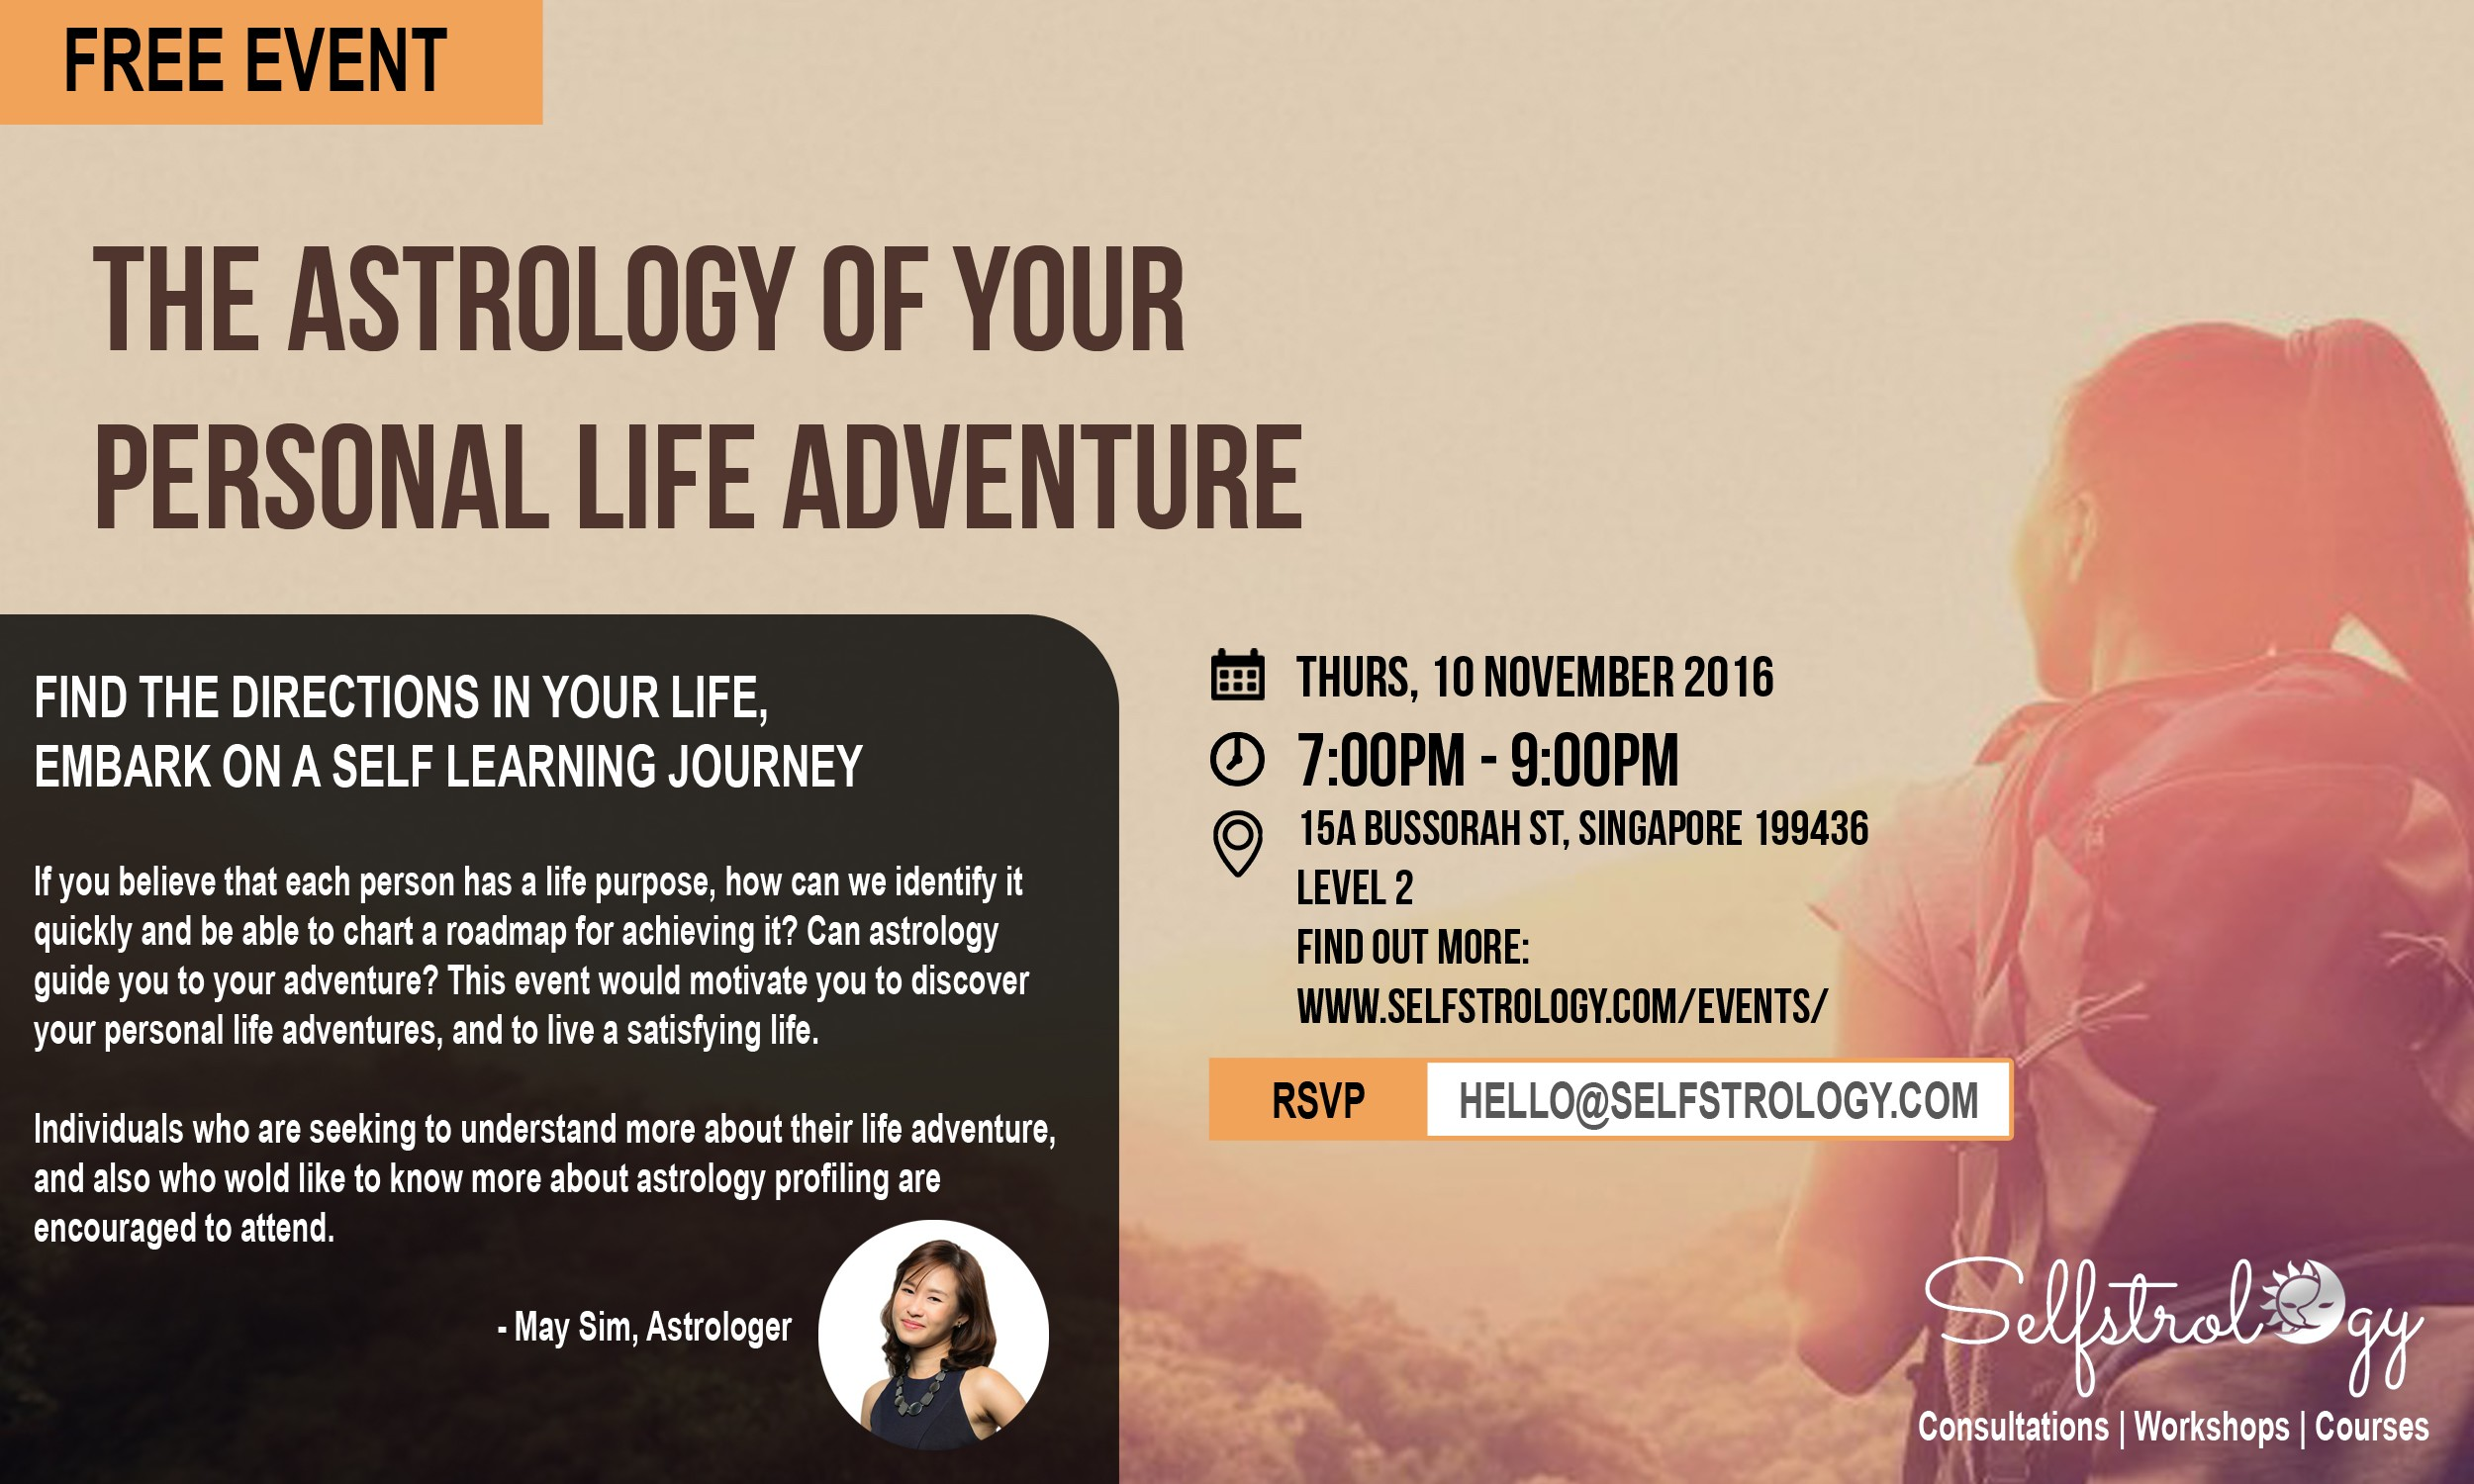 Selfstrology Free Event The Astrology Of Your Personal Life Adventure